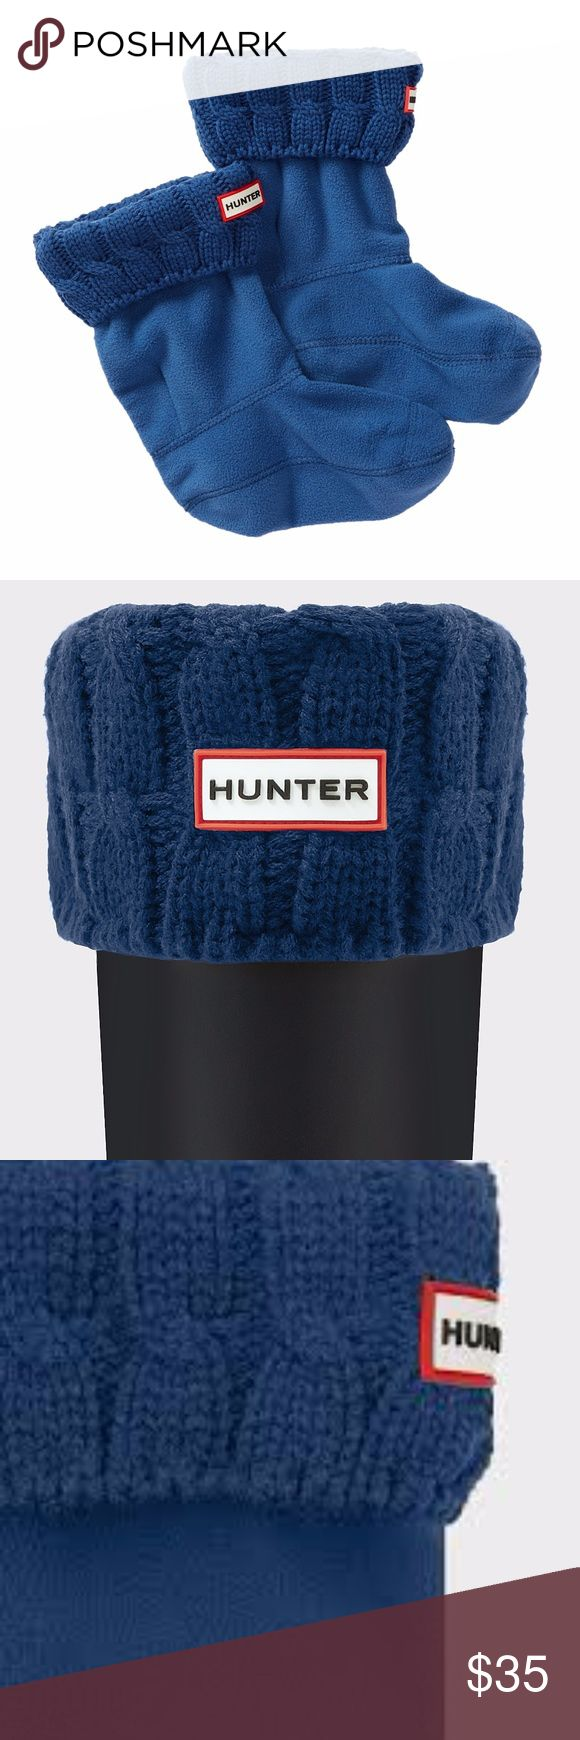 Hunter Short Boot Socks Half Cardigan Size Large Hunter short boot socks half cardigan knitted size large and the color is tarp blue.  These fit the Hunter Chelsea boot or any short Hunter boot. Hunter Accessories Hosiery & Socks